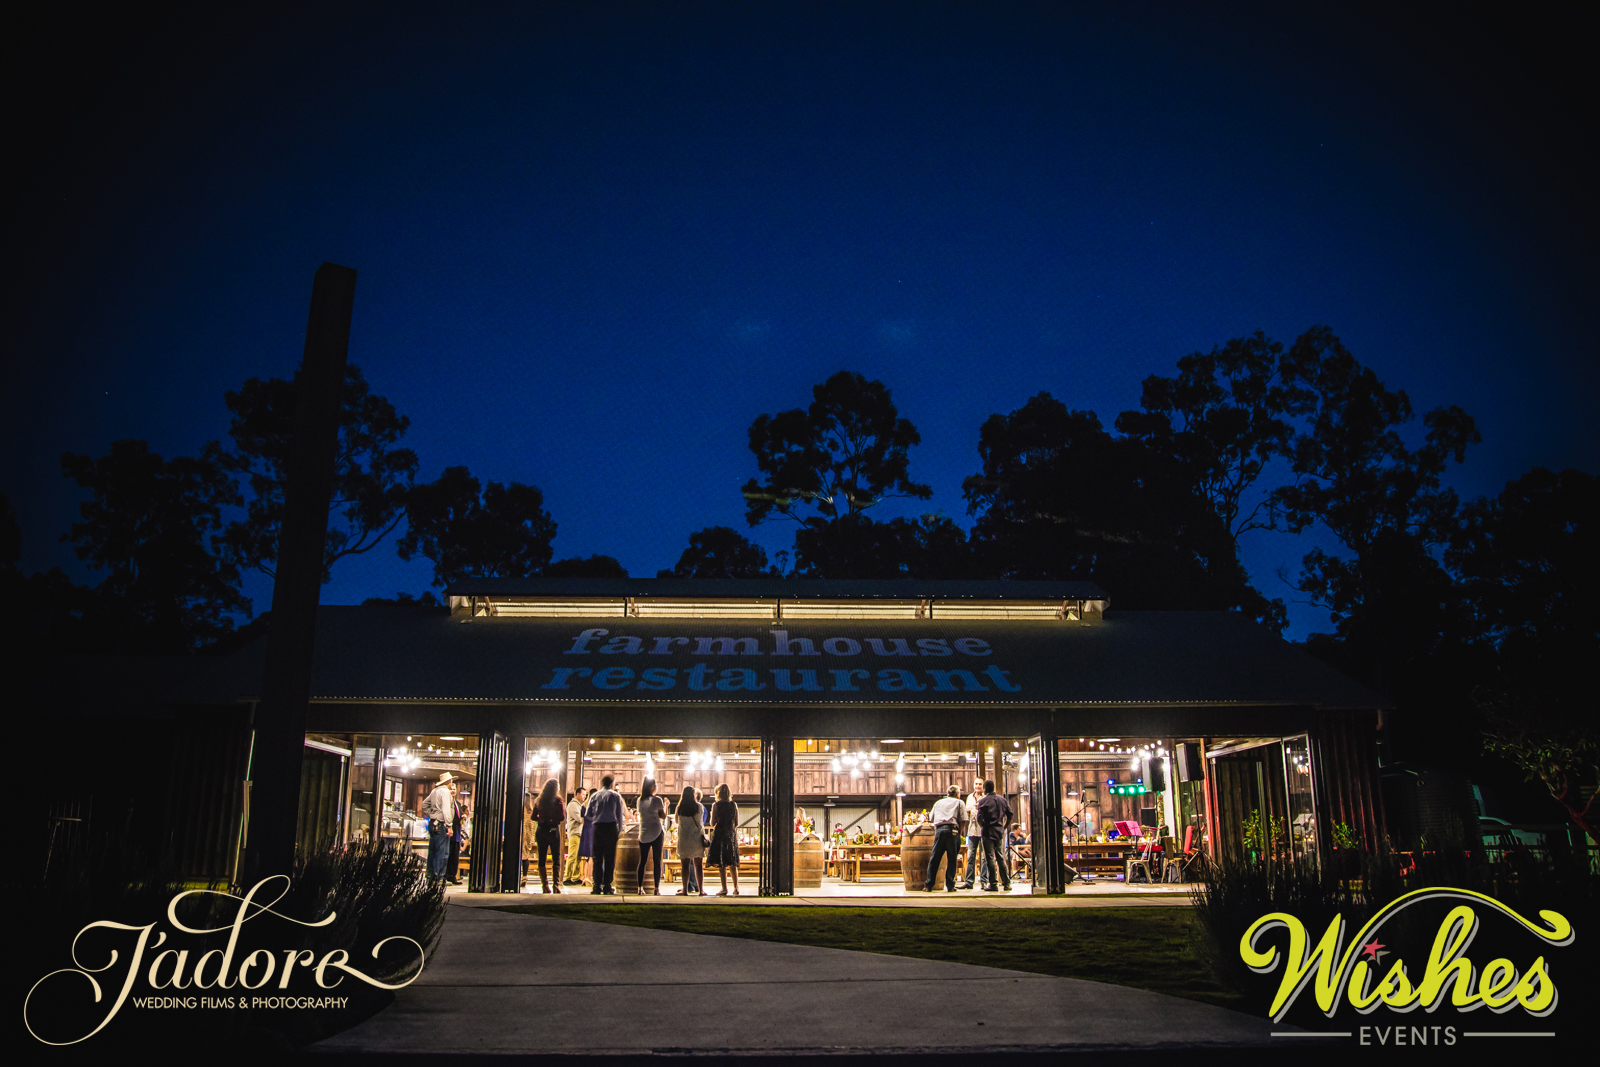 Paradise Country Gold Coast Wedding Venue, Styled by Wishes Events and Photographed by J'adore Wedding Photography & Videography